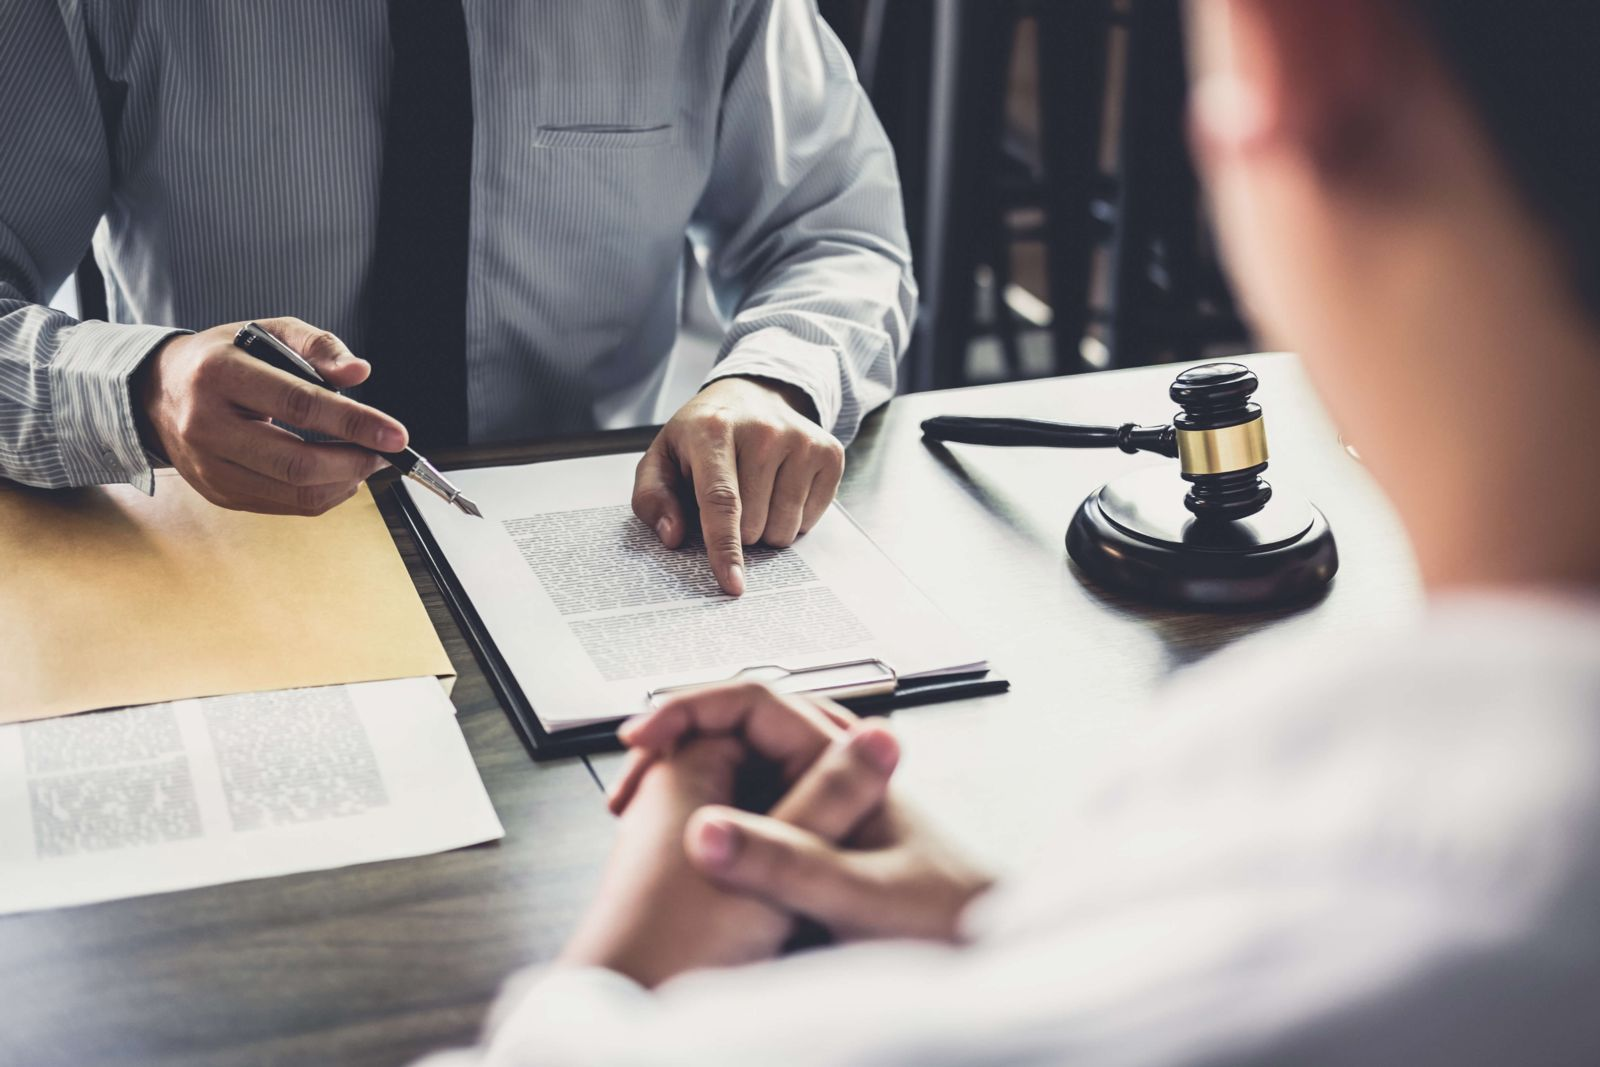 Ineffective assistance of counsel in criminal case